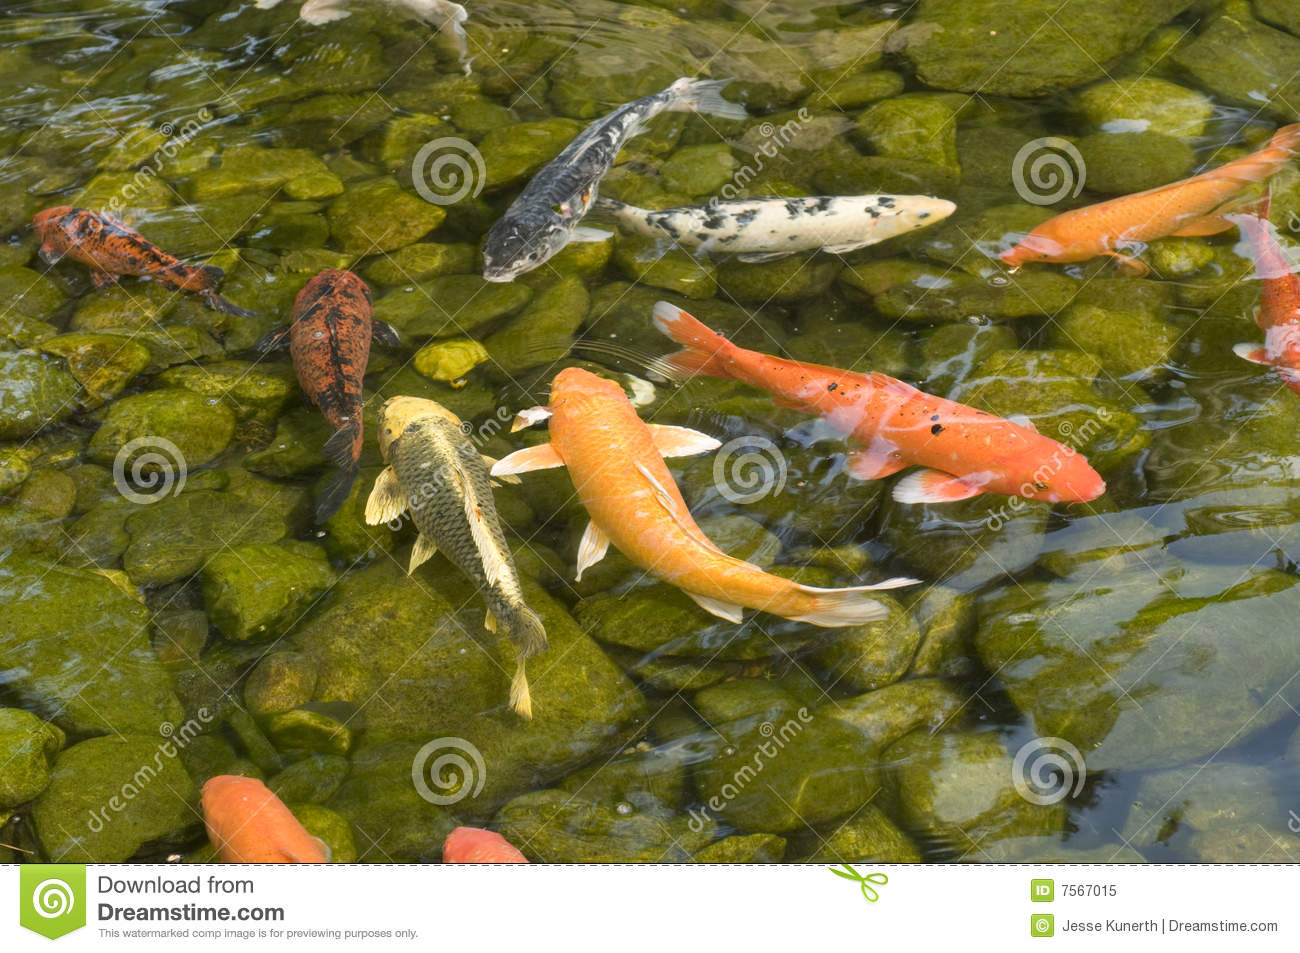 Koi pond stock image image of orange fish nature pond for Pond fish varieties